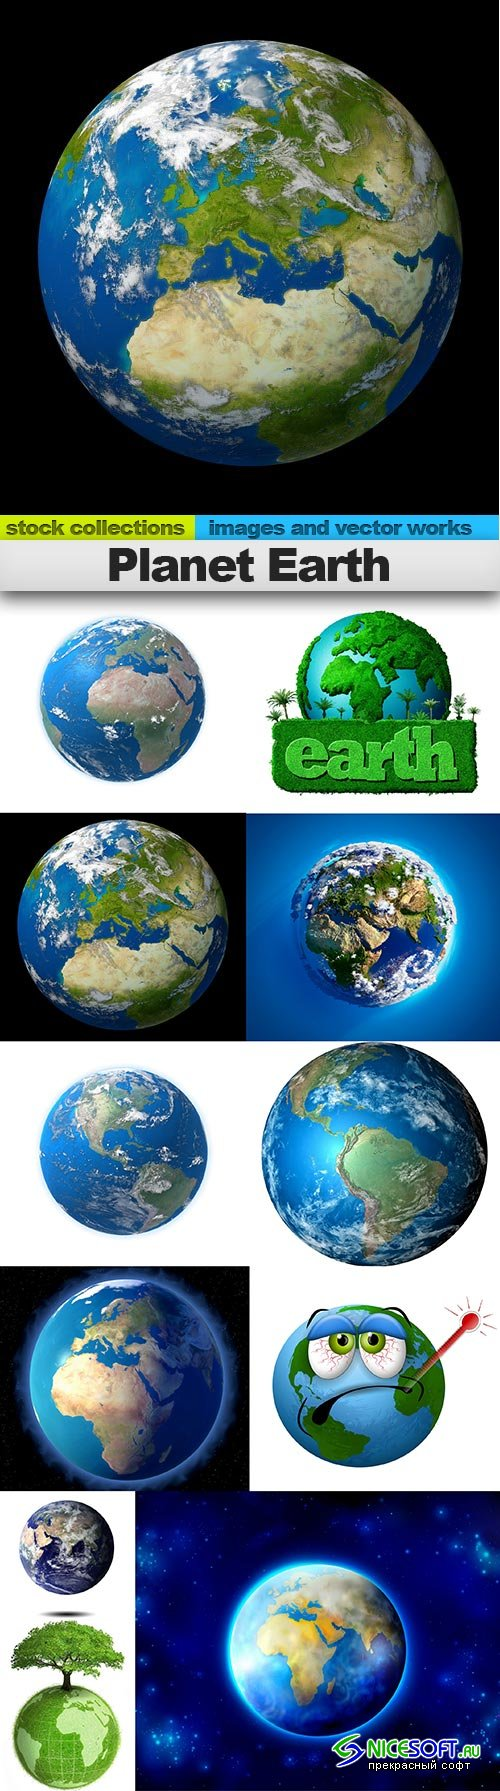 Planet Earth, 11 x UHQ JPEG